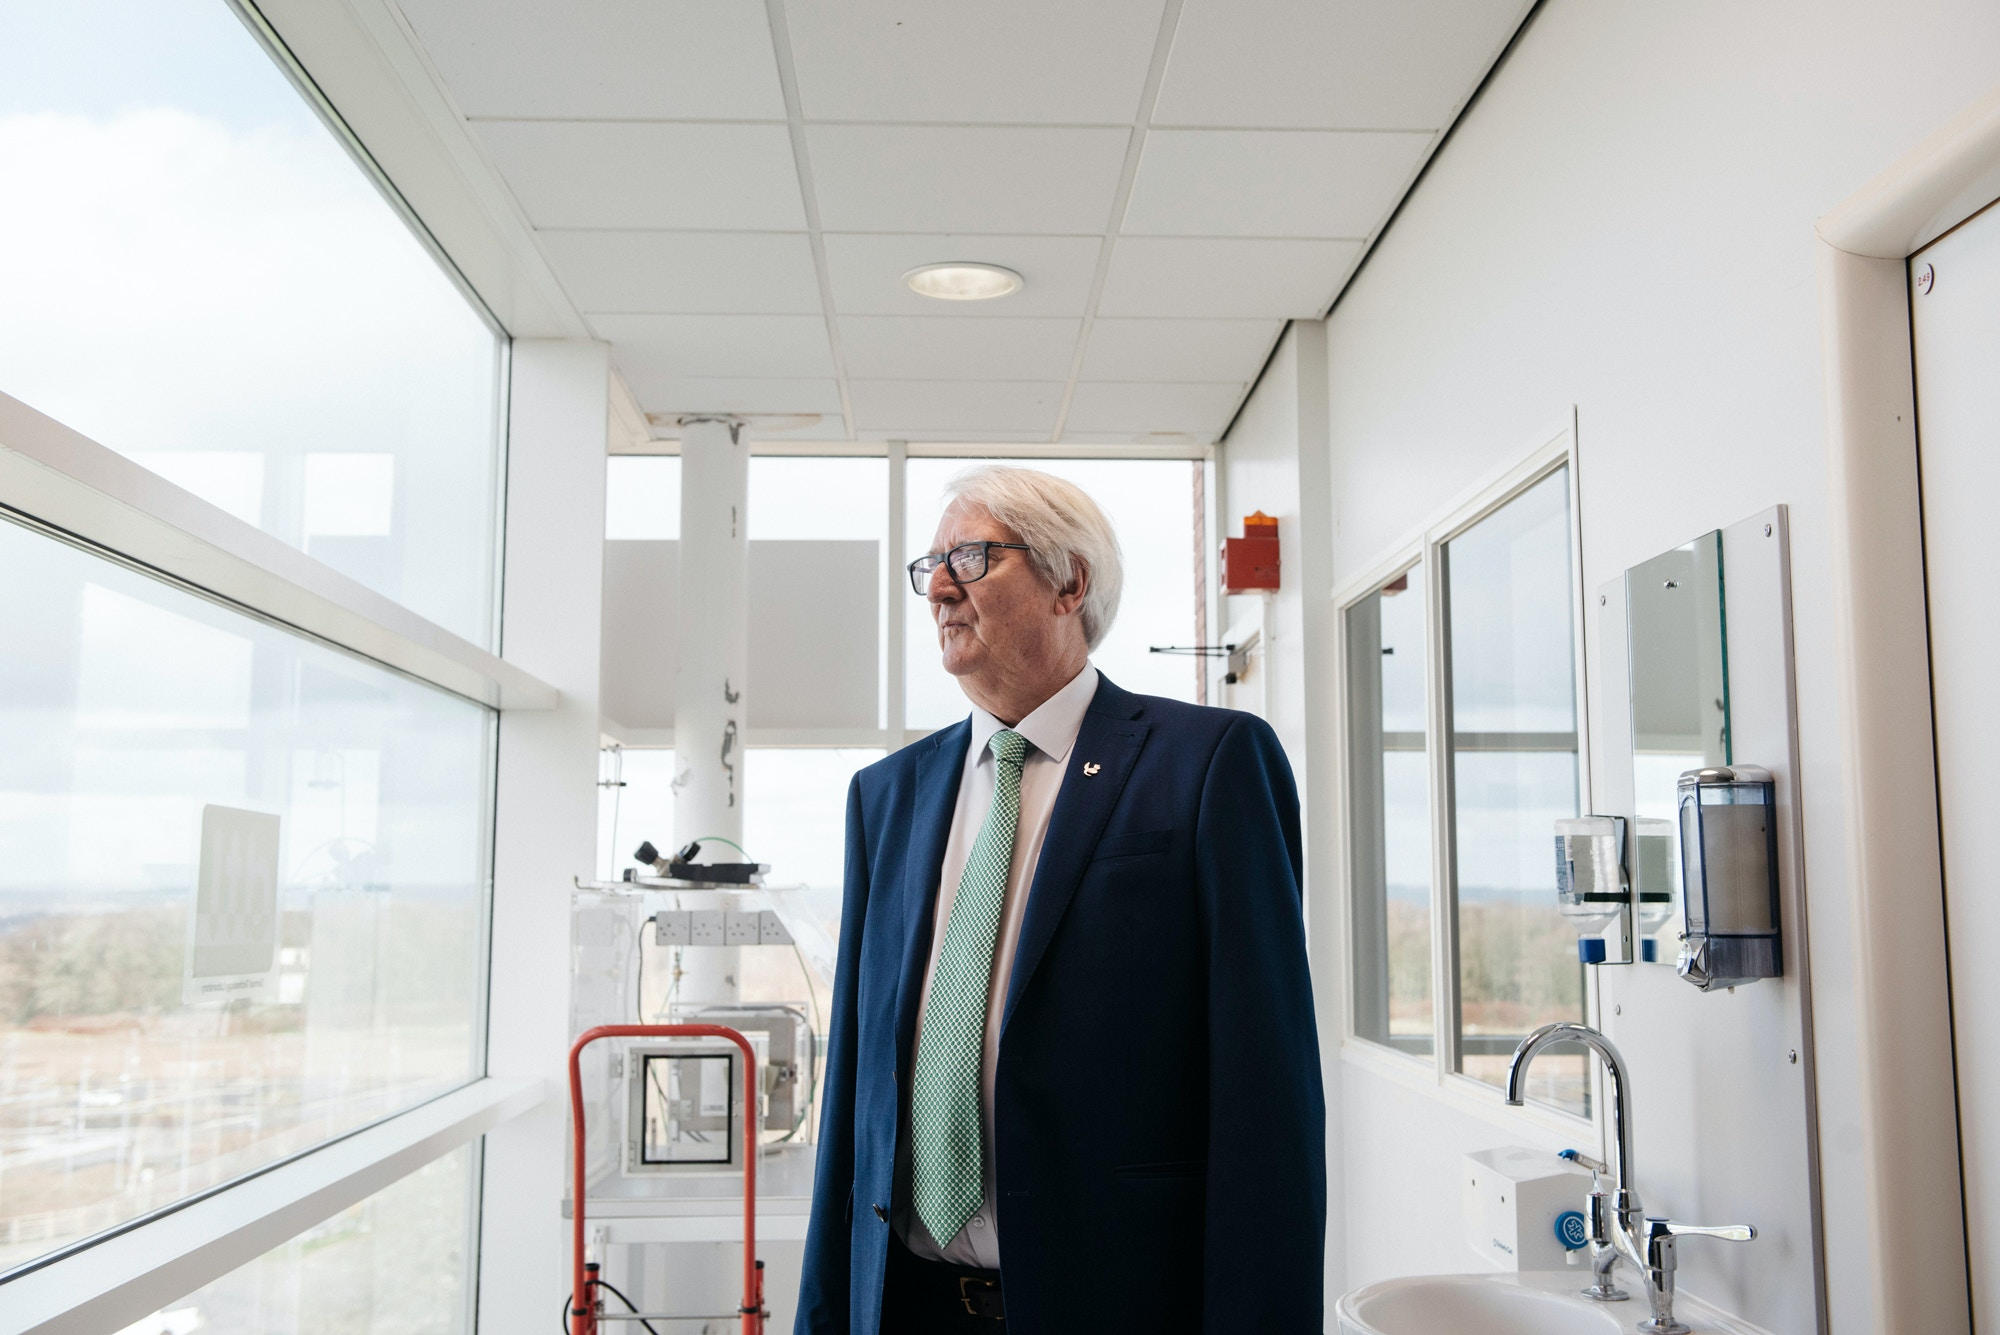 Heylings at his lab at Keele University Science and Innovation Park in Newcastle-under-Lyme, England, on March 15, 2021.